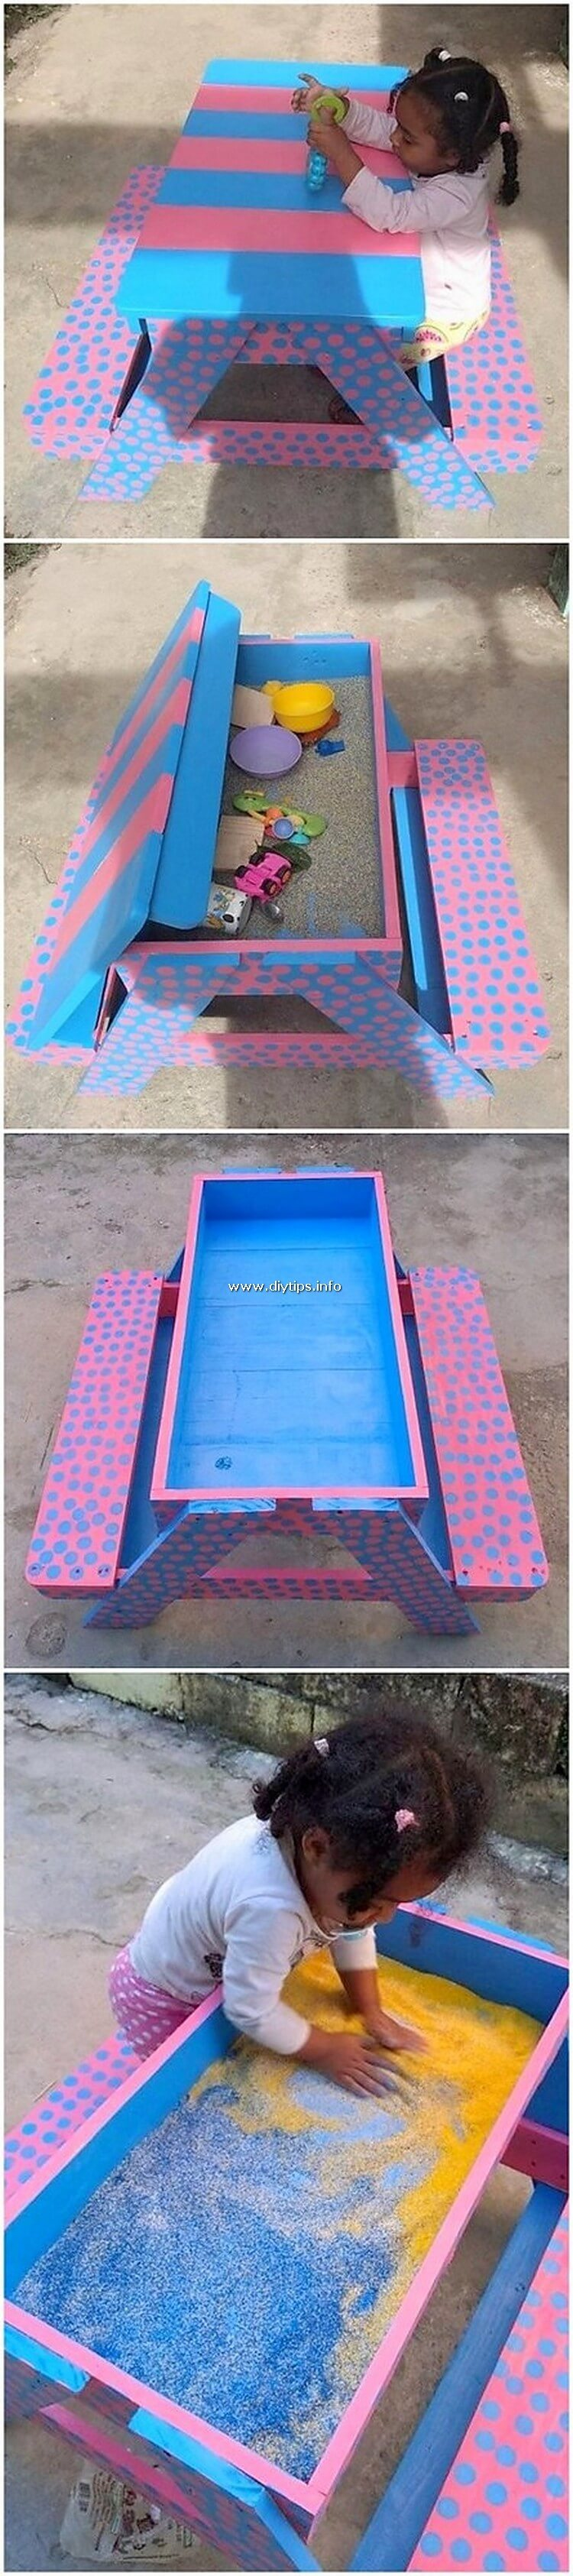 Pallet Table with Benches for Kids